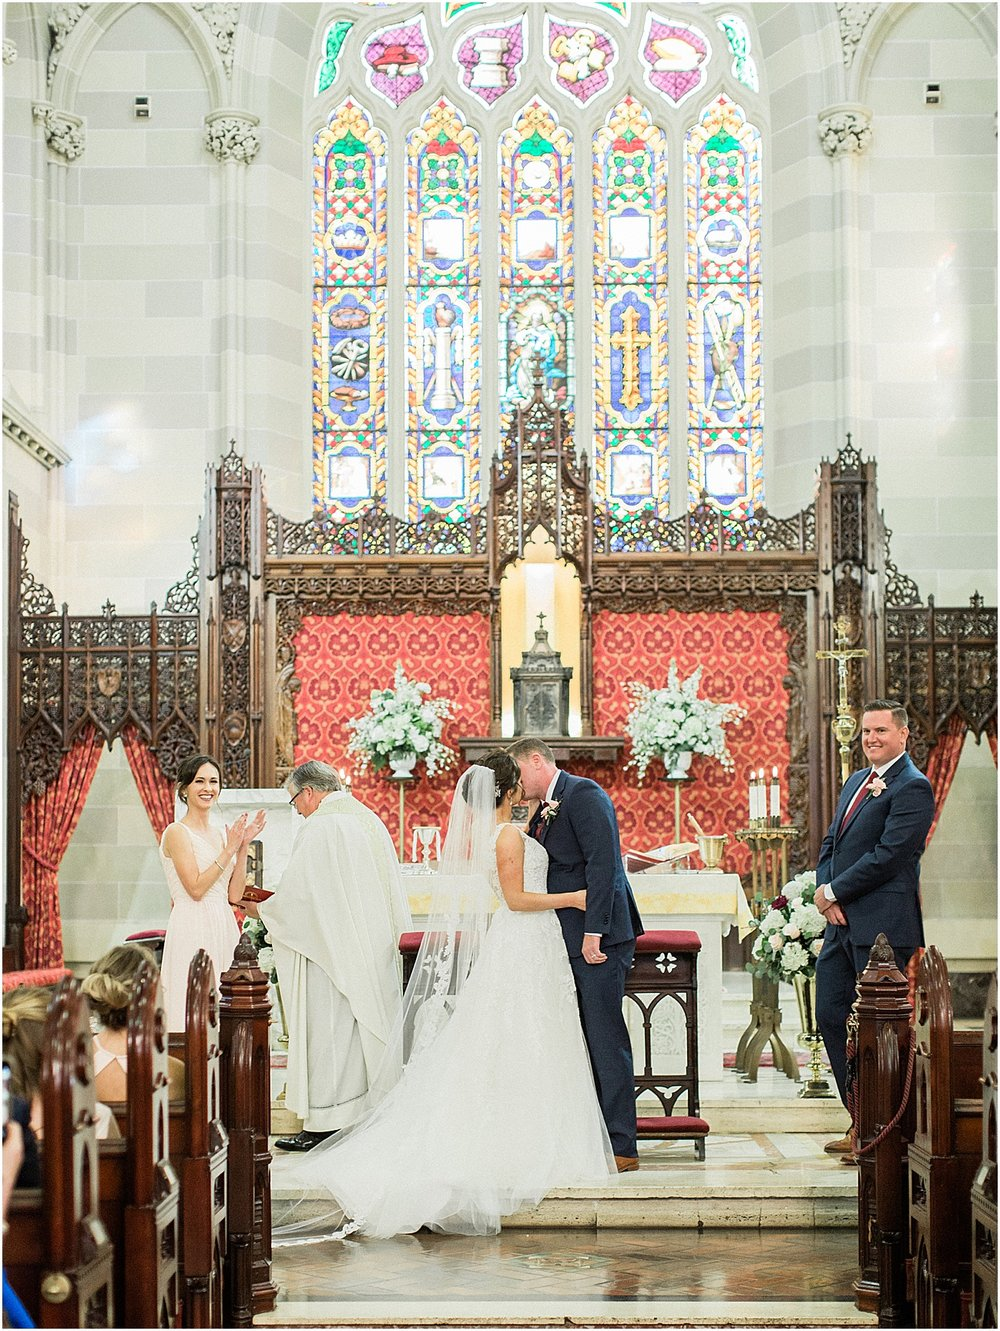 shannon_daniel_dan_atlantic_resort_saint_marys_st_mary_church_fall_newport_catholic_irish_cape_cod_boston_wedding_photographer_meredith_jane_photography_photo_1620.jpg